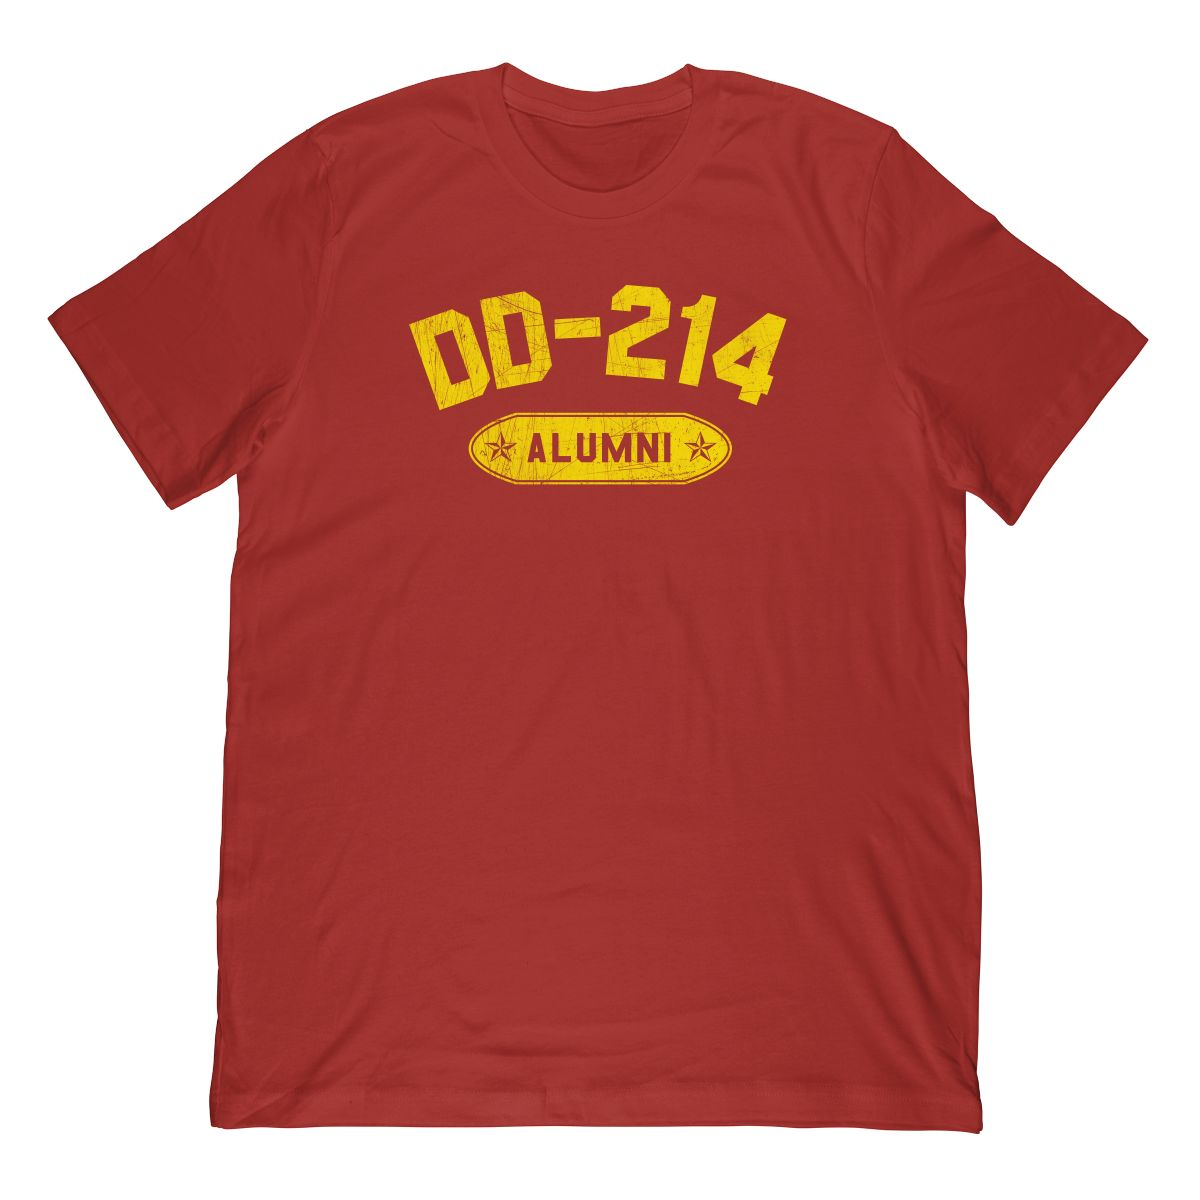 DD-214 Alumni In Yellow & Distressed (Stamp Look) T-Shirt